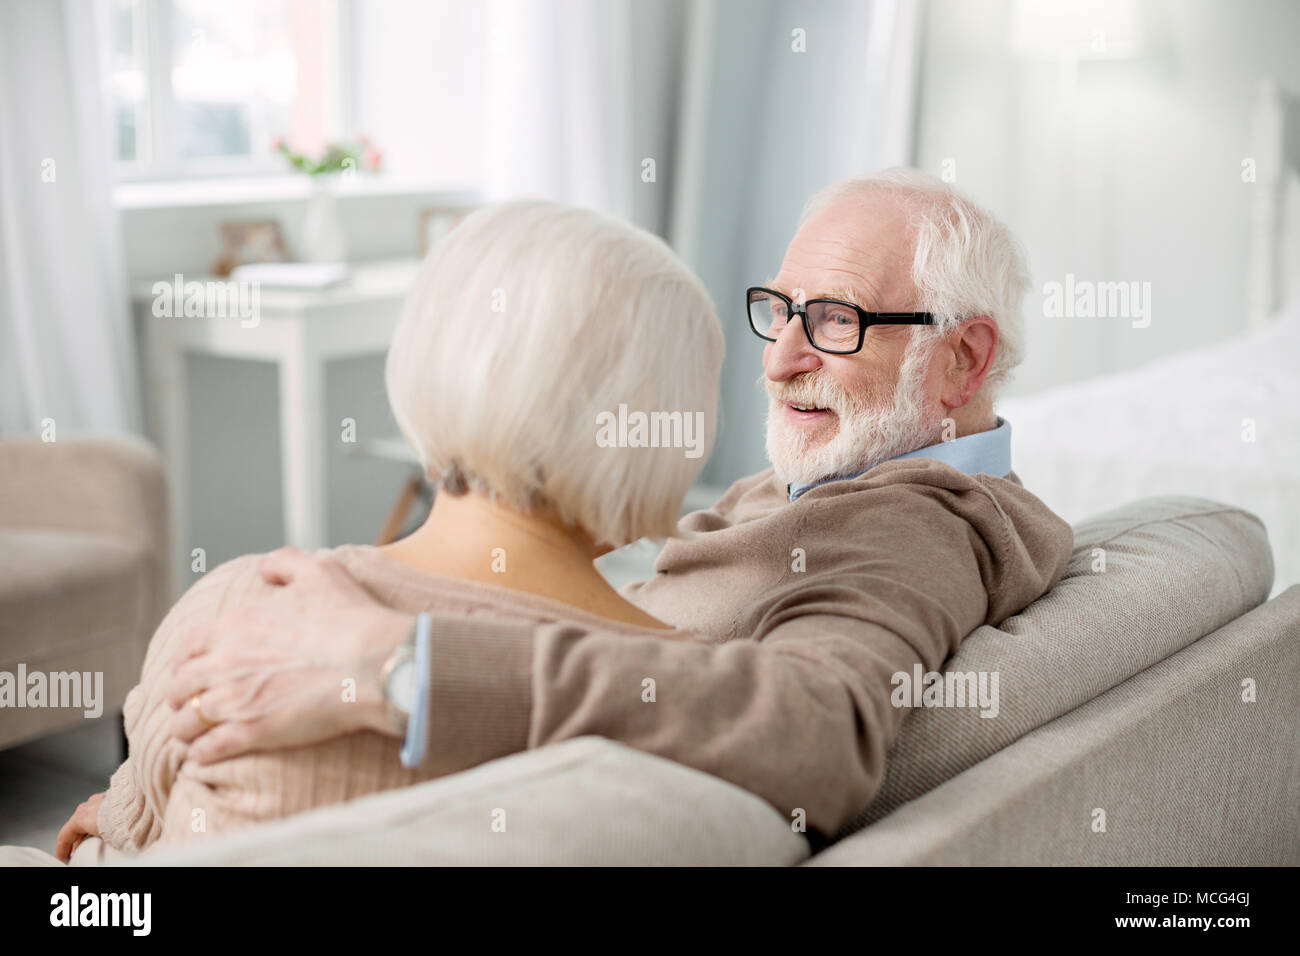 Positive aged couple resting at home - Stock Image